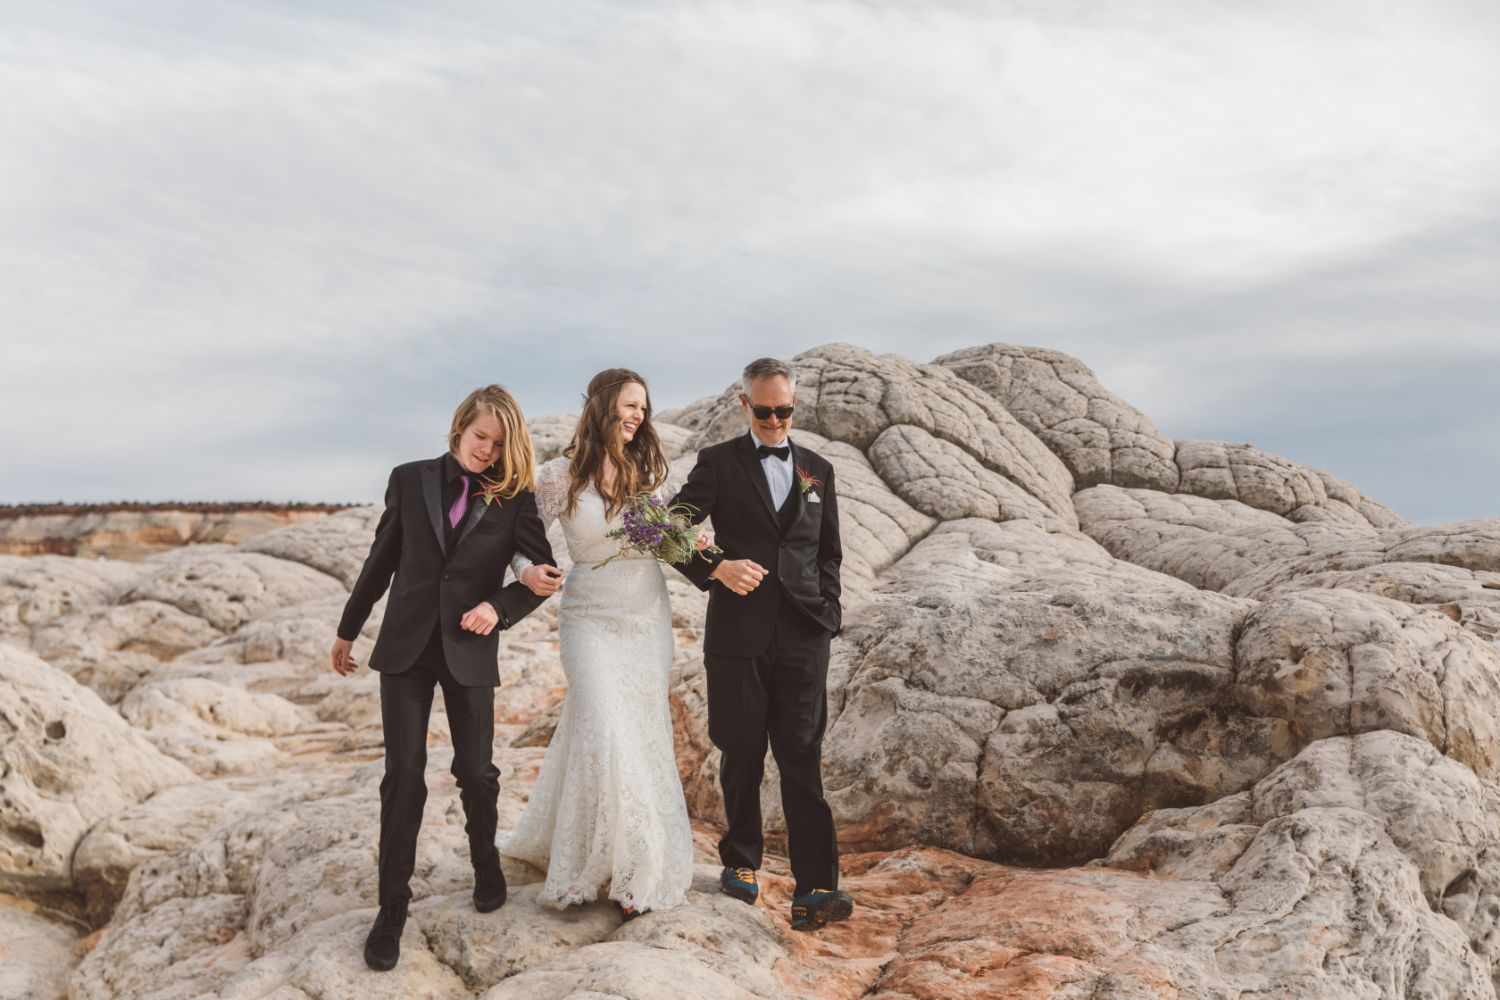 bride-walks-over-sandstone-with-friends